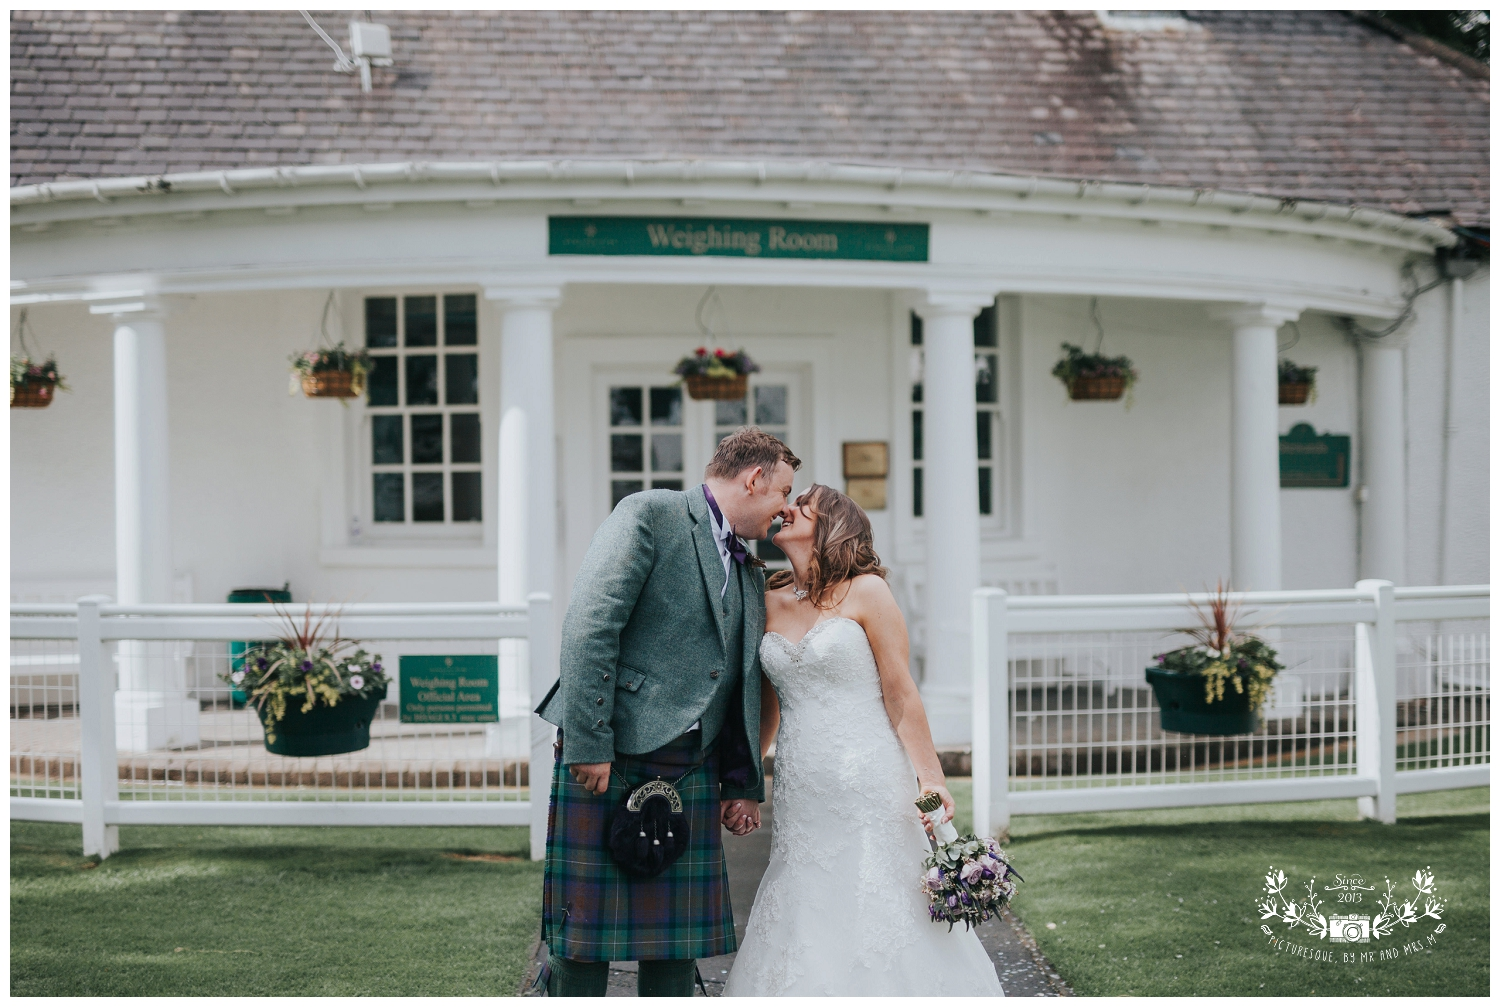 Hamilton Park Racecourse  wedding photography, Picturesque by Mr and Mrs M_0053.jpg